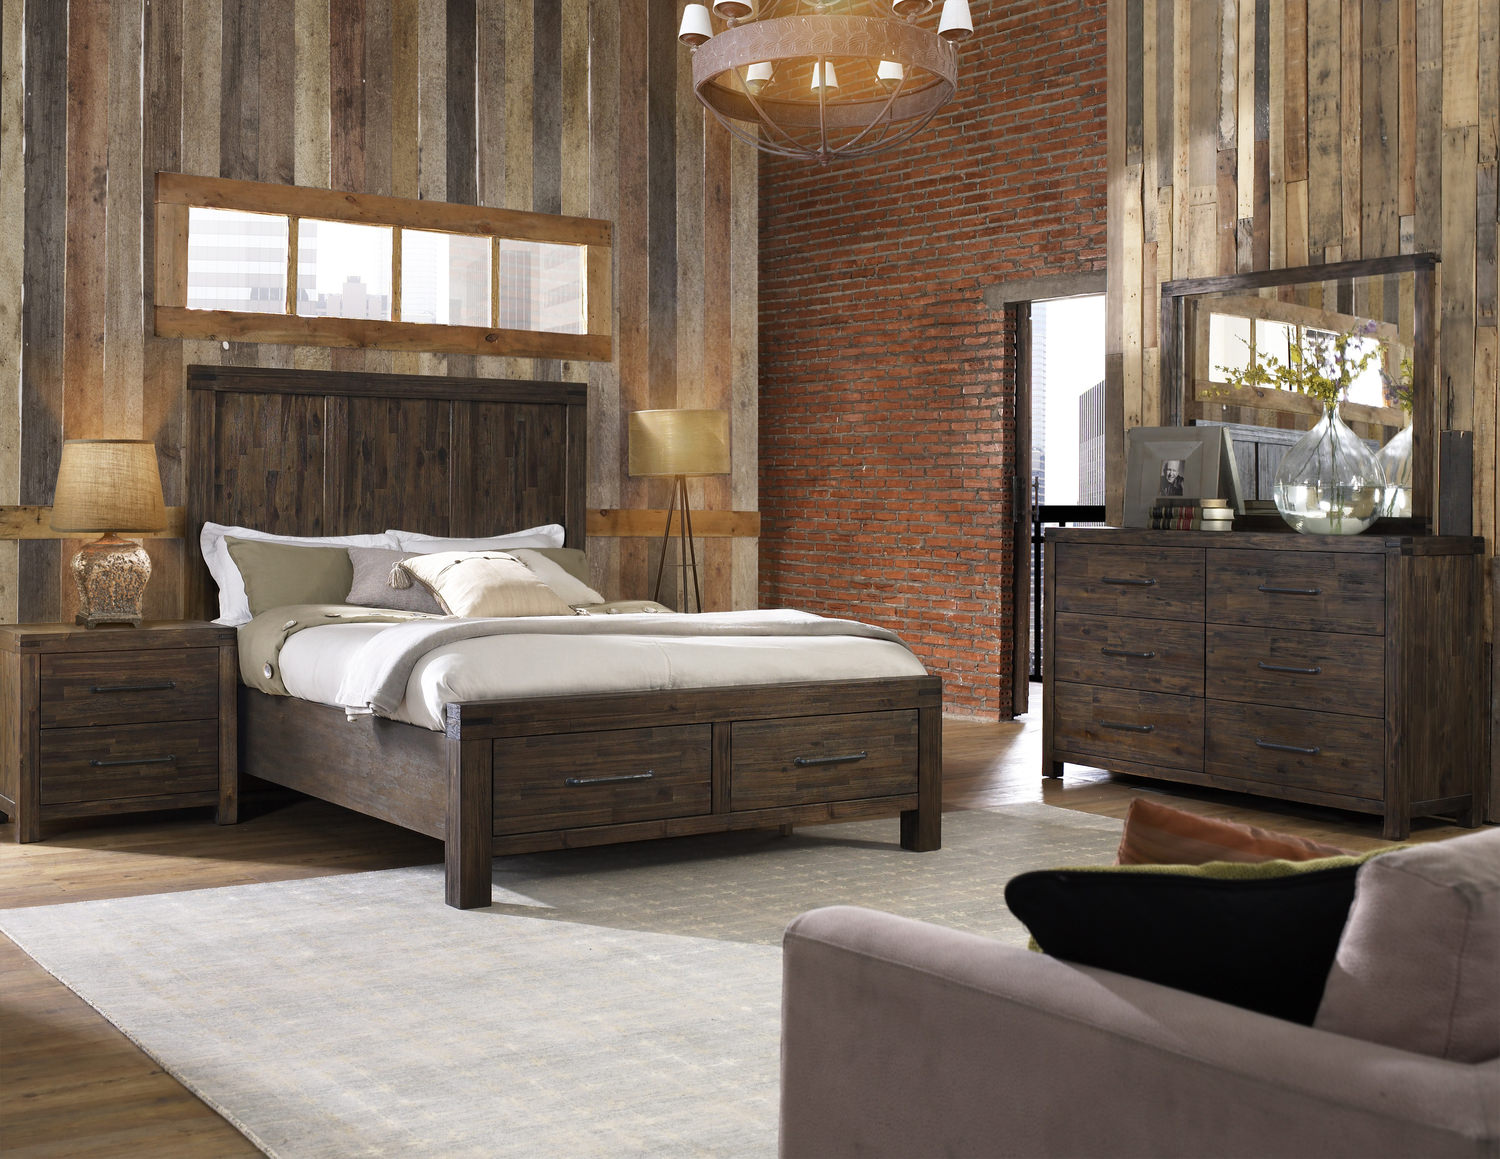 st croix storage bedroom suite by thomas hom furniture 18196 | 302954 1